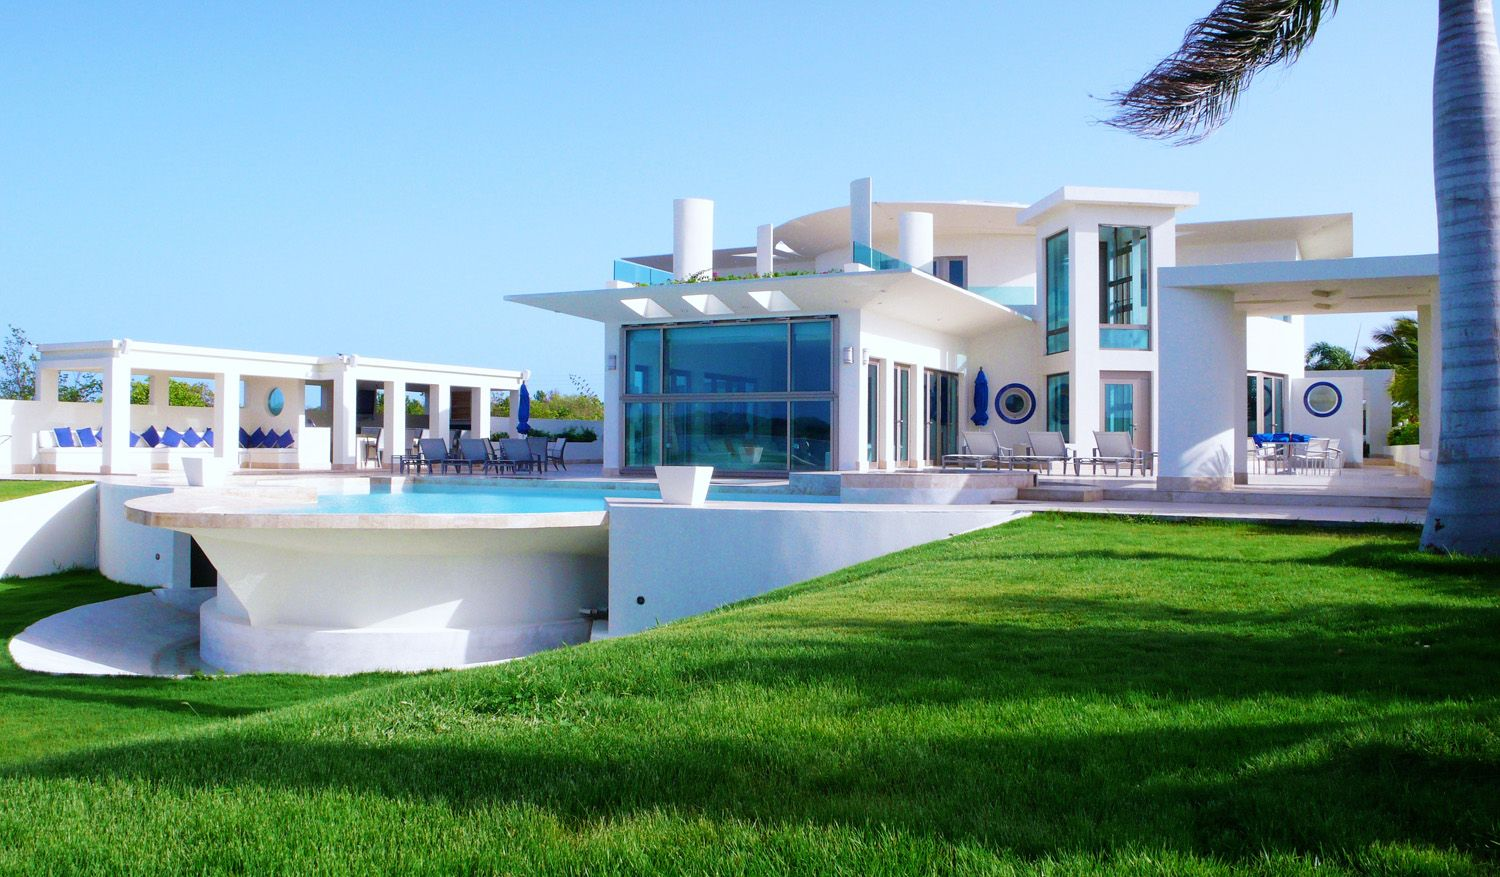 Contemporary luxury white family villa architecture and design with modern swimming pool in - Modern villa designs ...